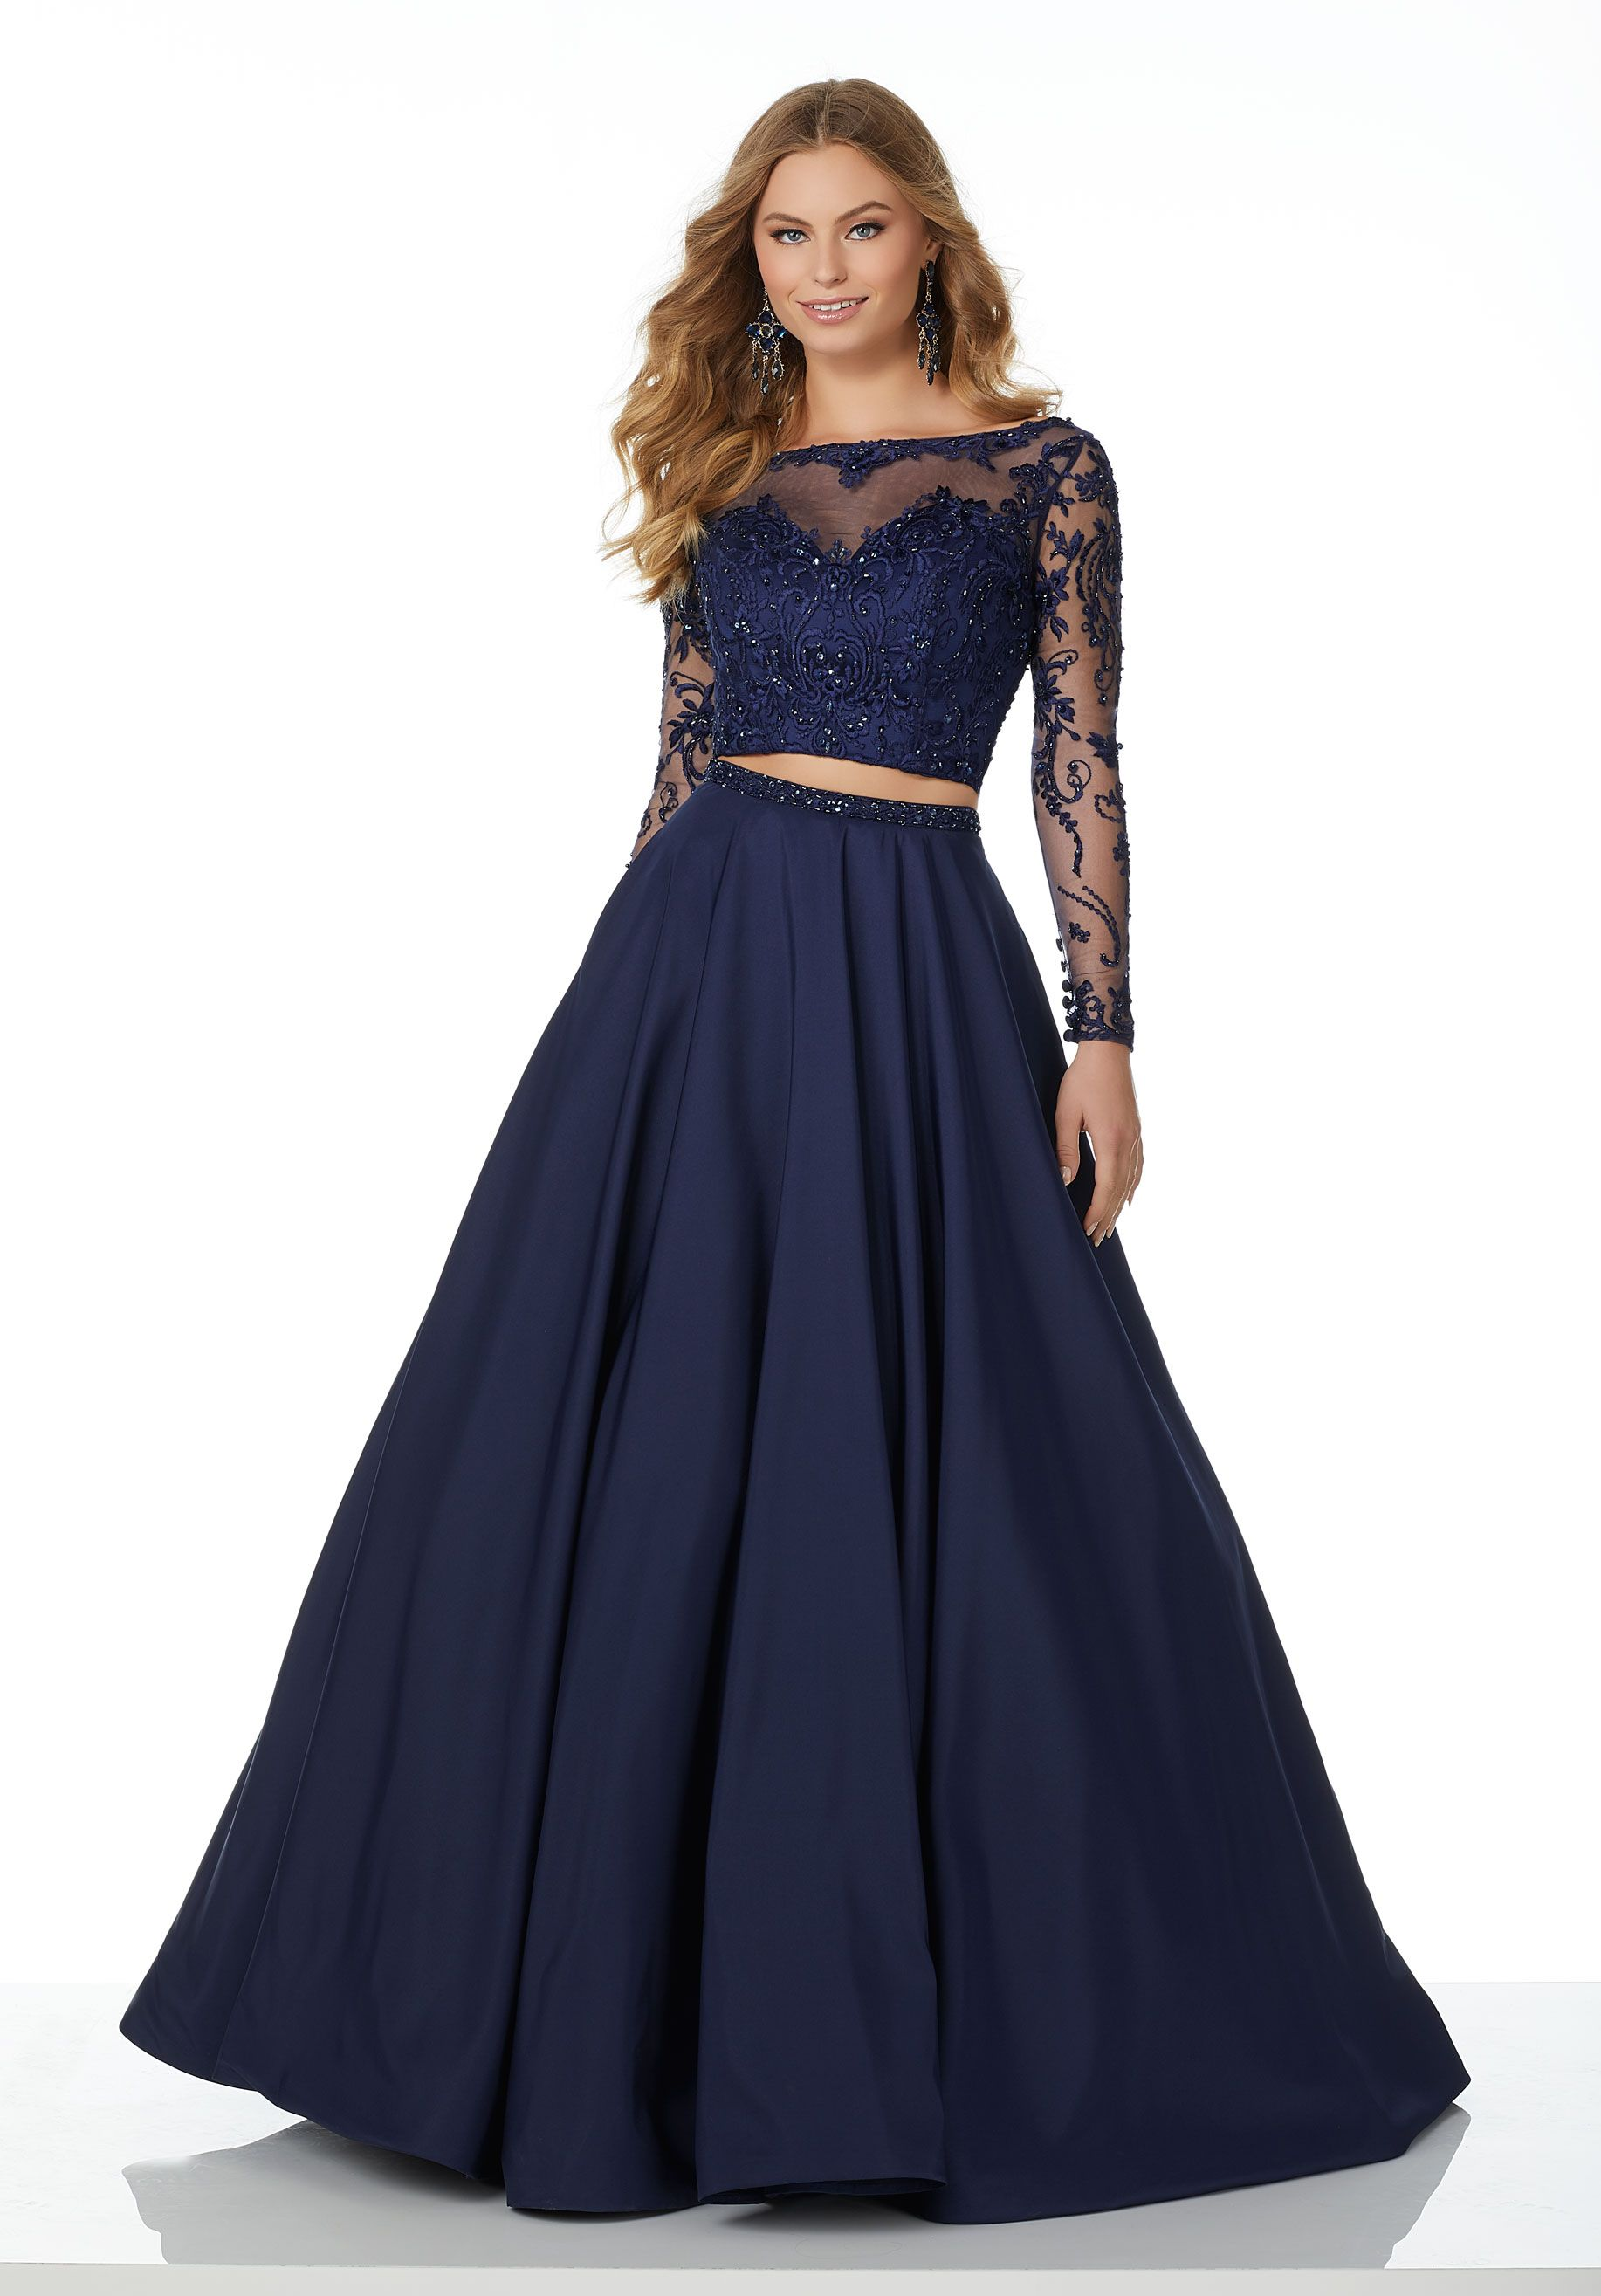 Two-Piece Ballgown Featuring a Full Taffeta Skirt and Long Sleeve Beaded  and Embroidered Net 791384bf3917